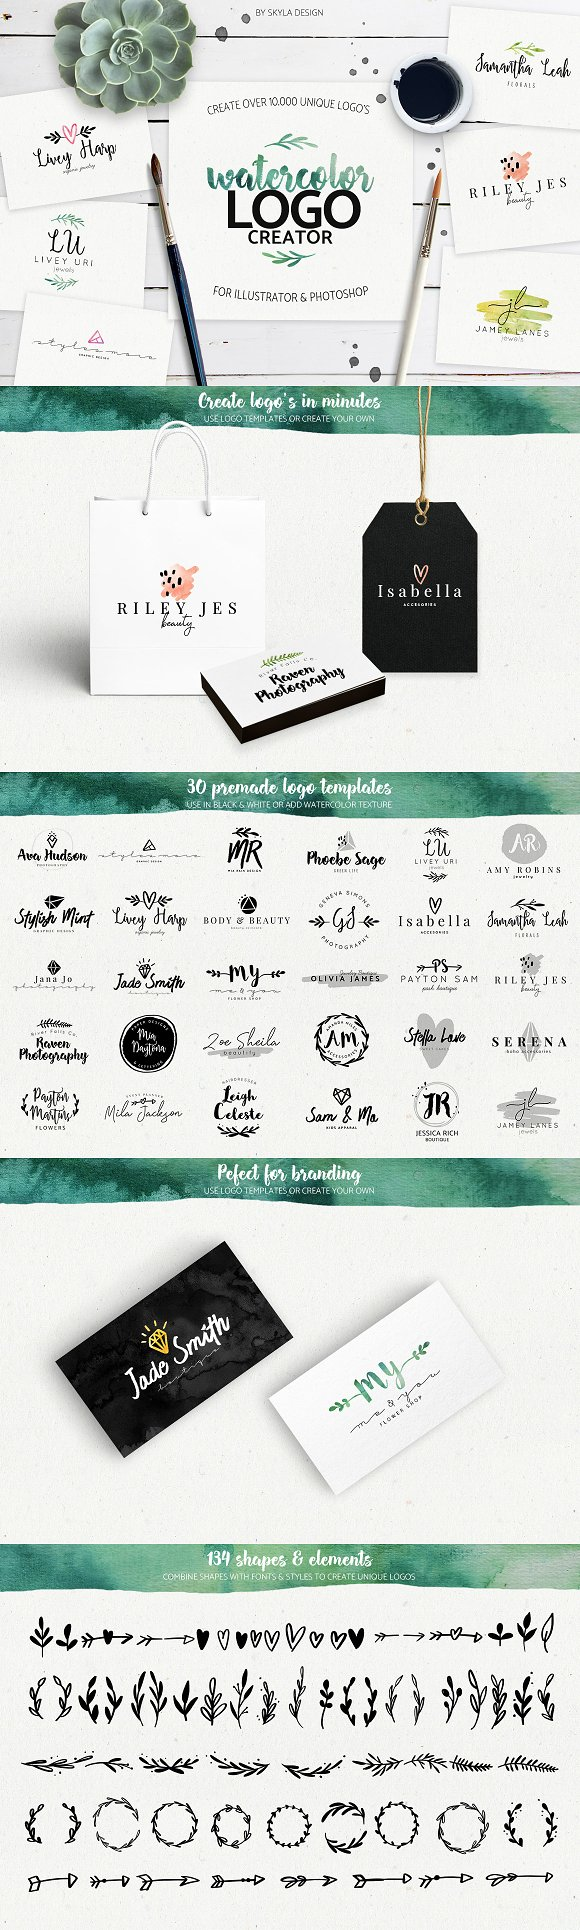 Premade Watercolor Logo Creator Kit Logos